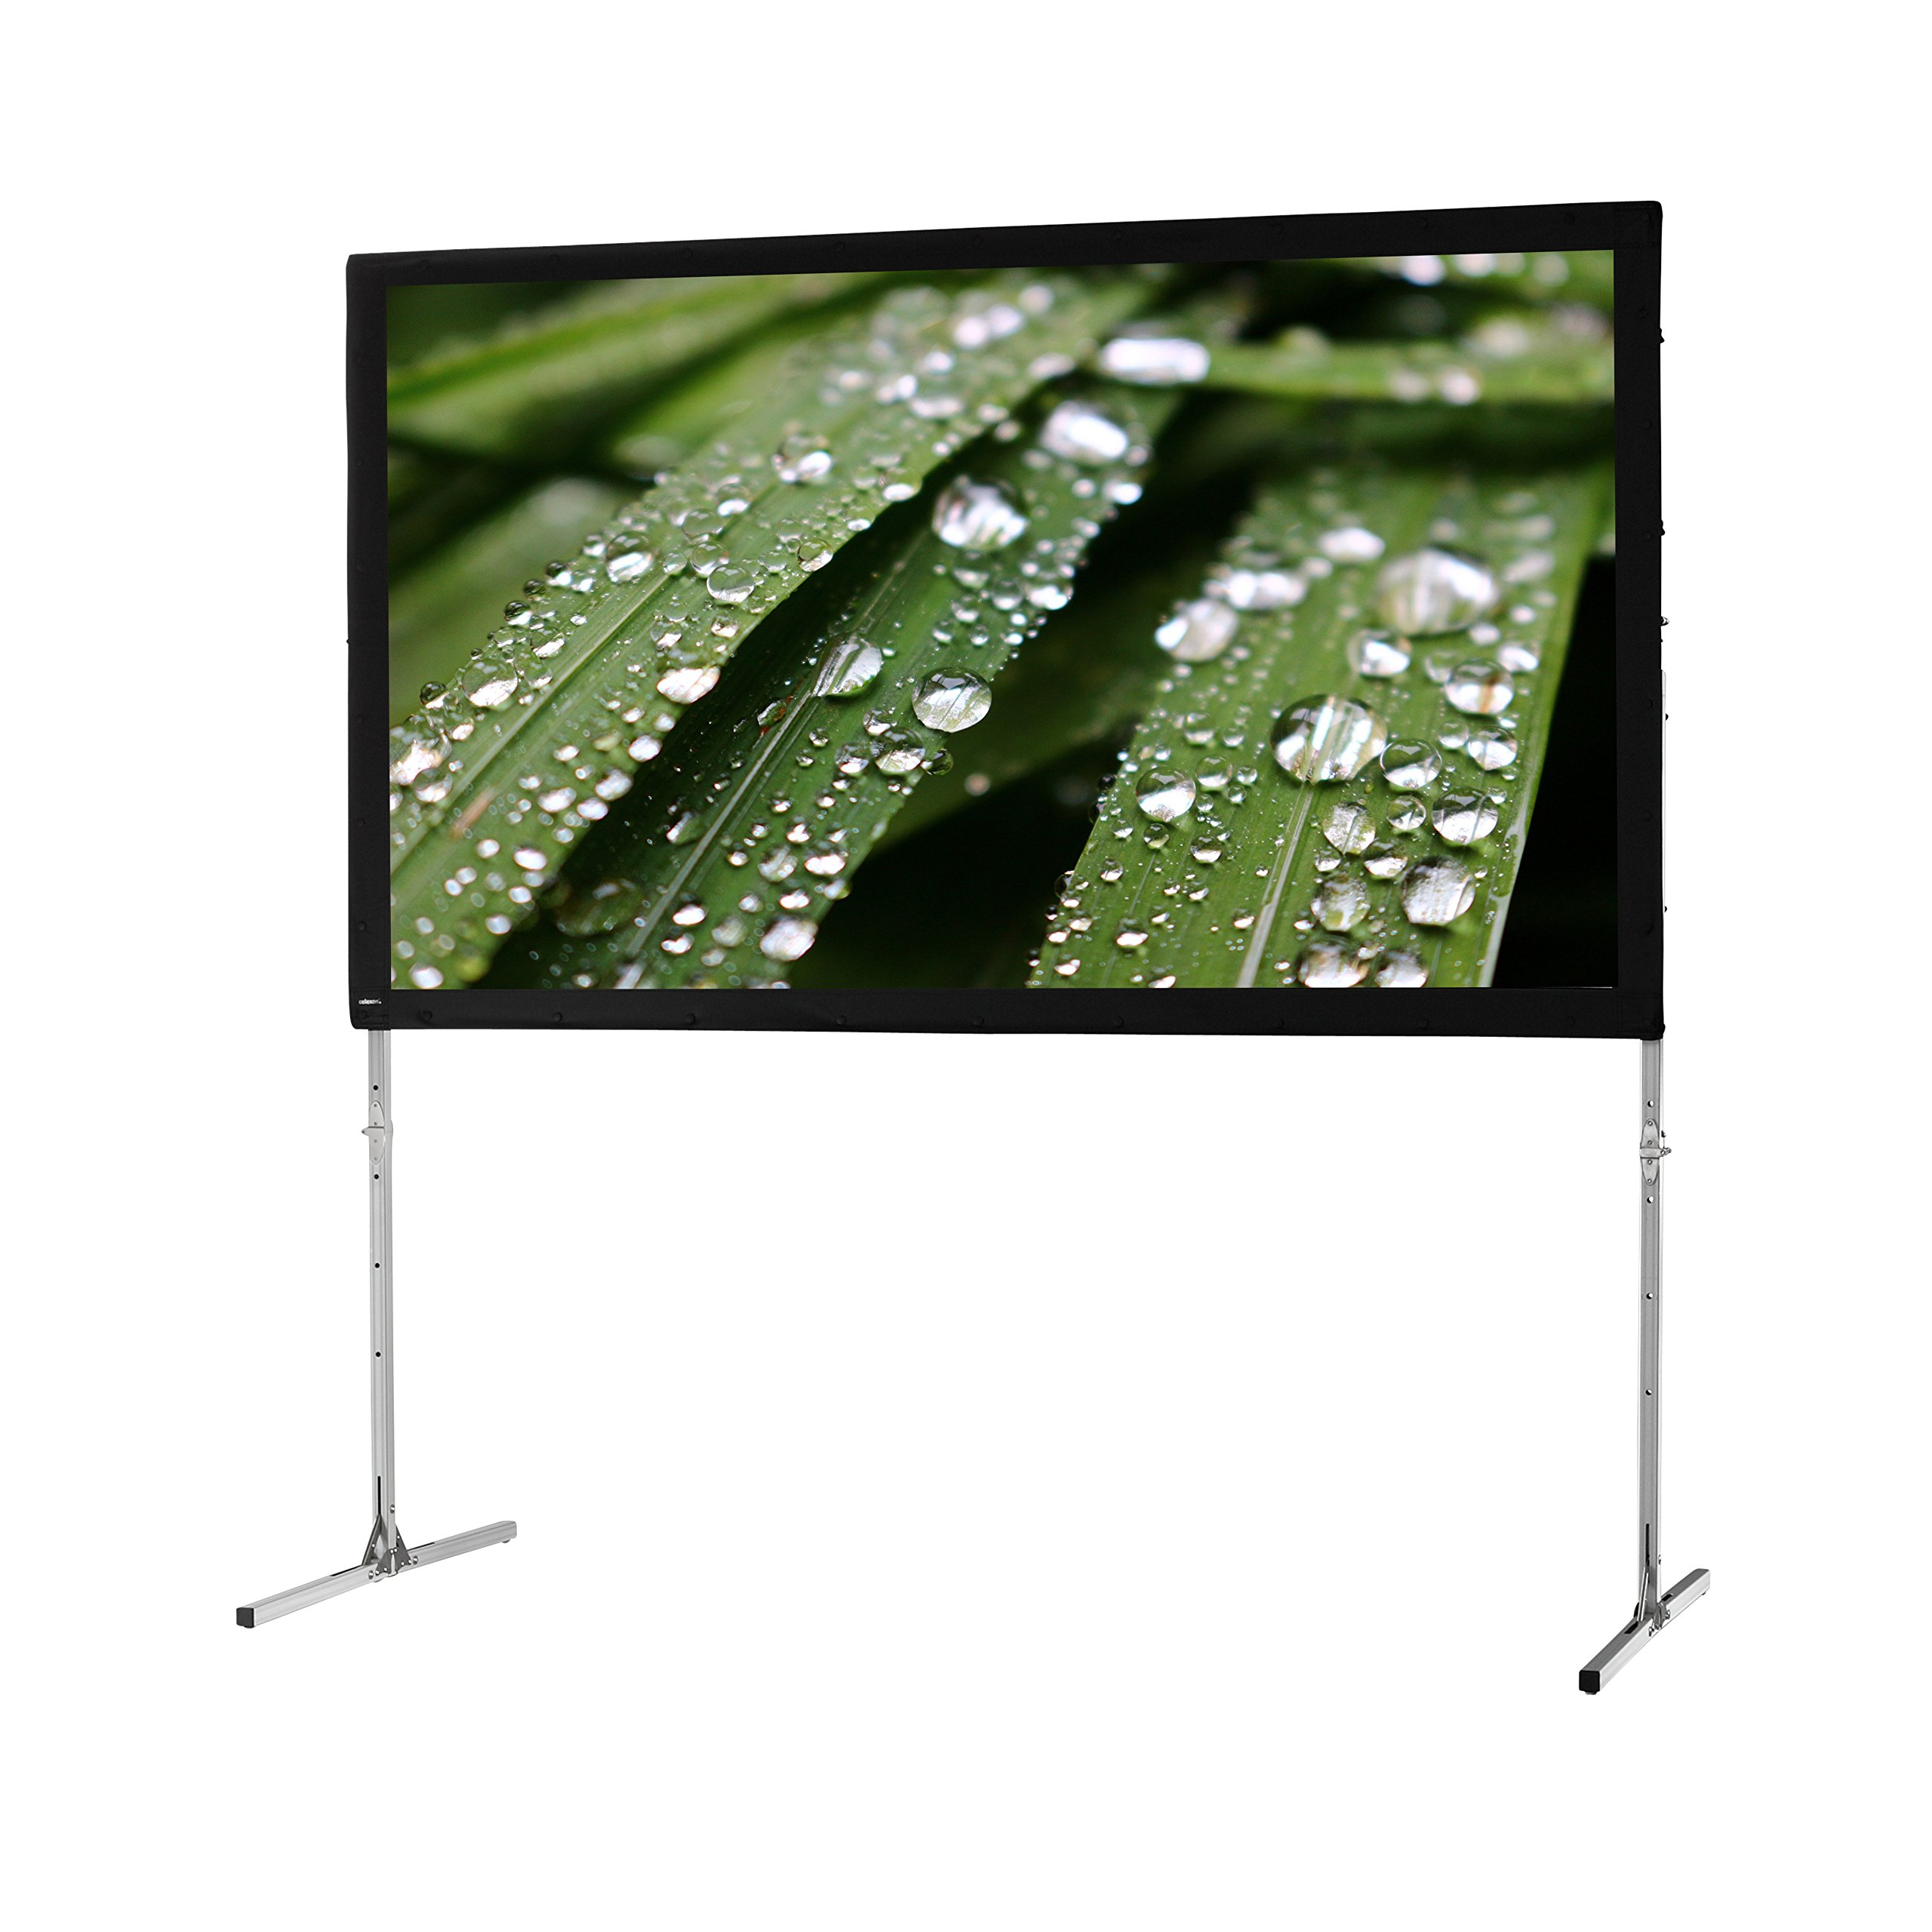 "celexon 183"" Folding Frame Screen Mobile Expert, Rear Projection Screen 